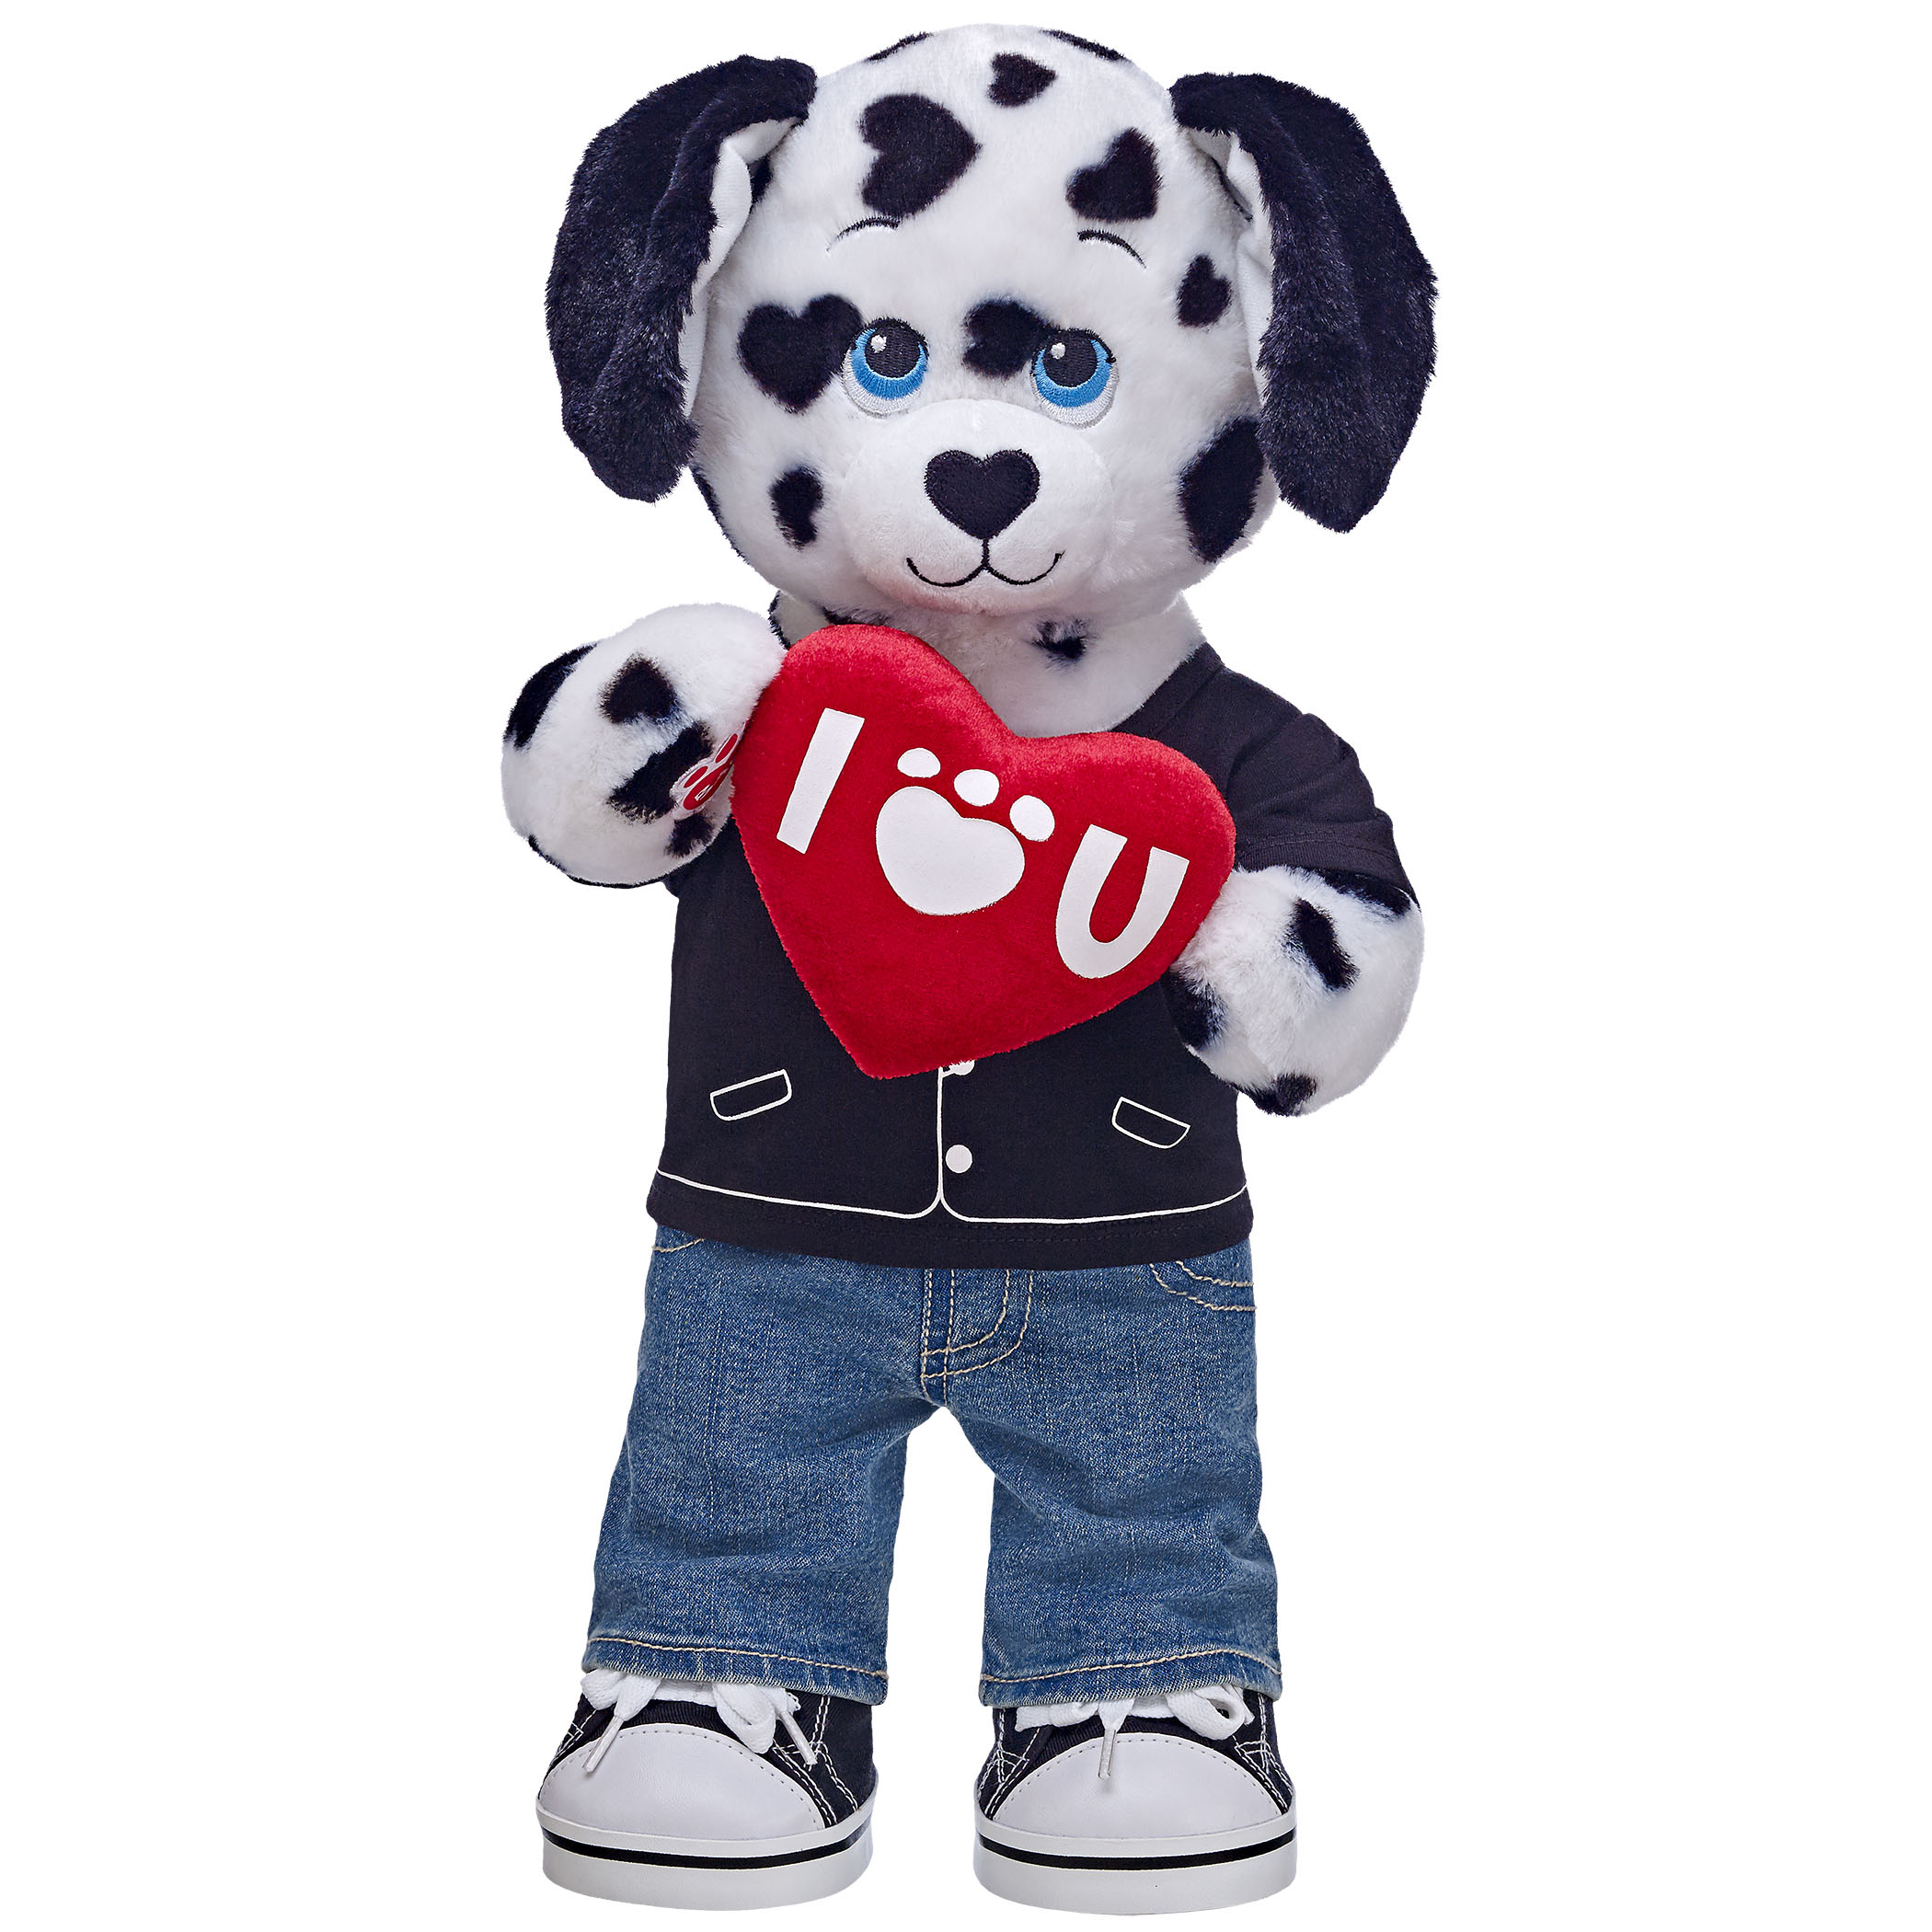 Valentines Day Build A Bear Giveaway Mamalicious Maria